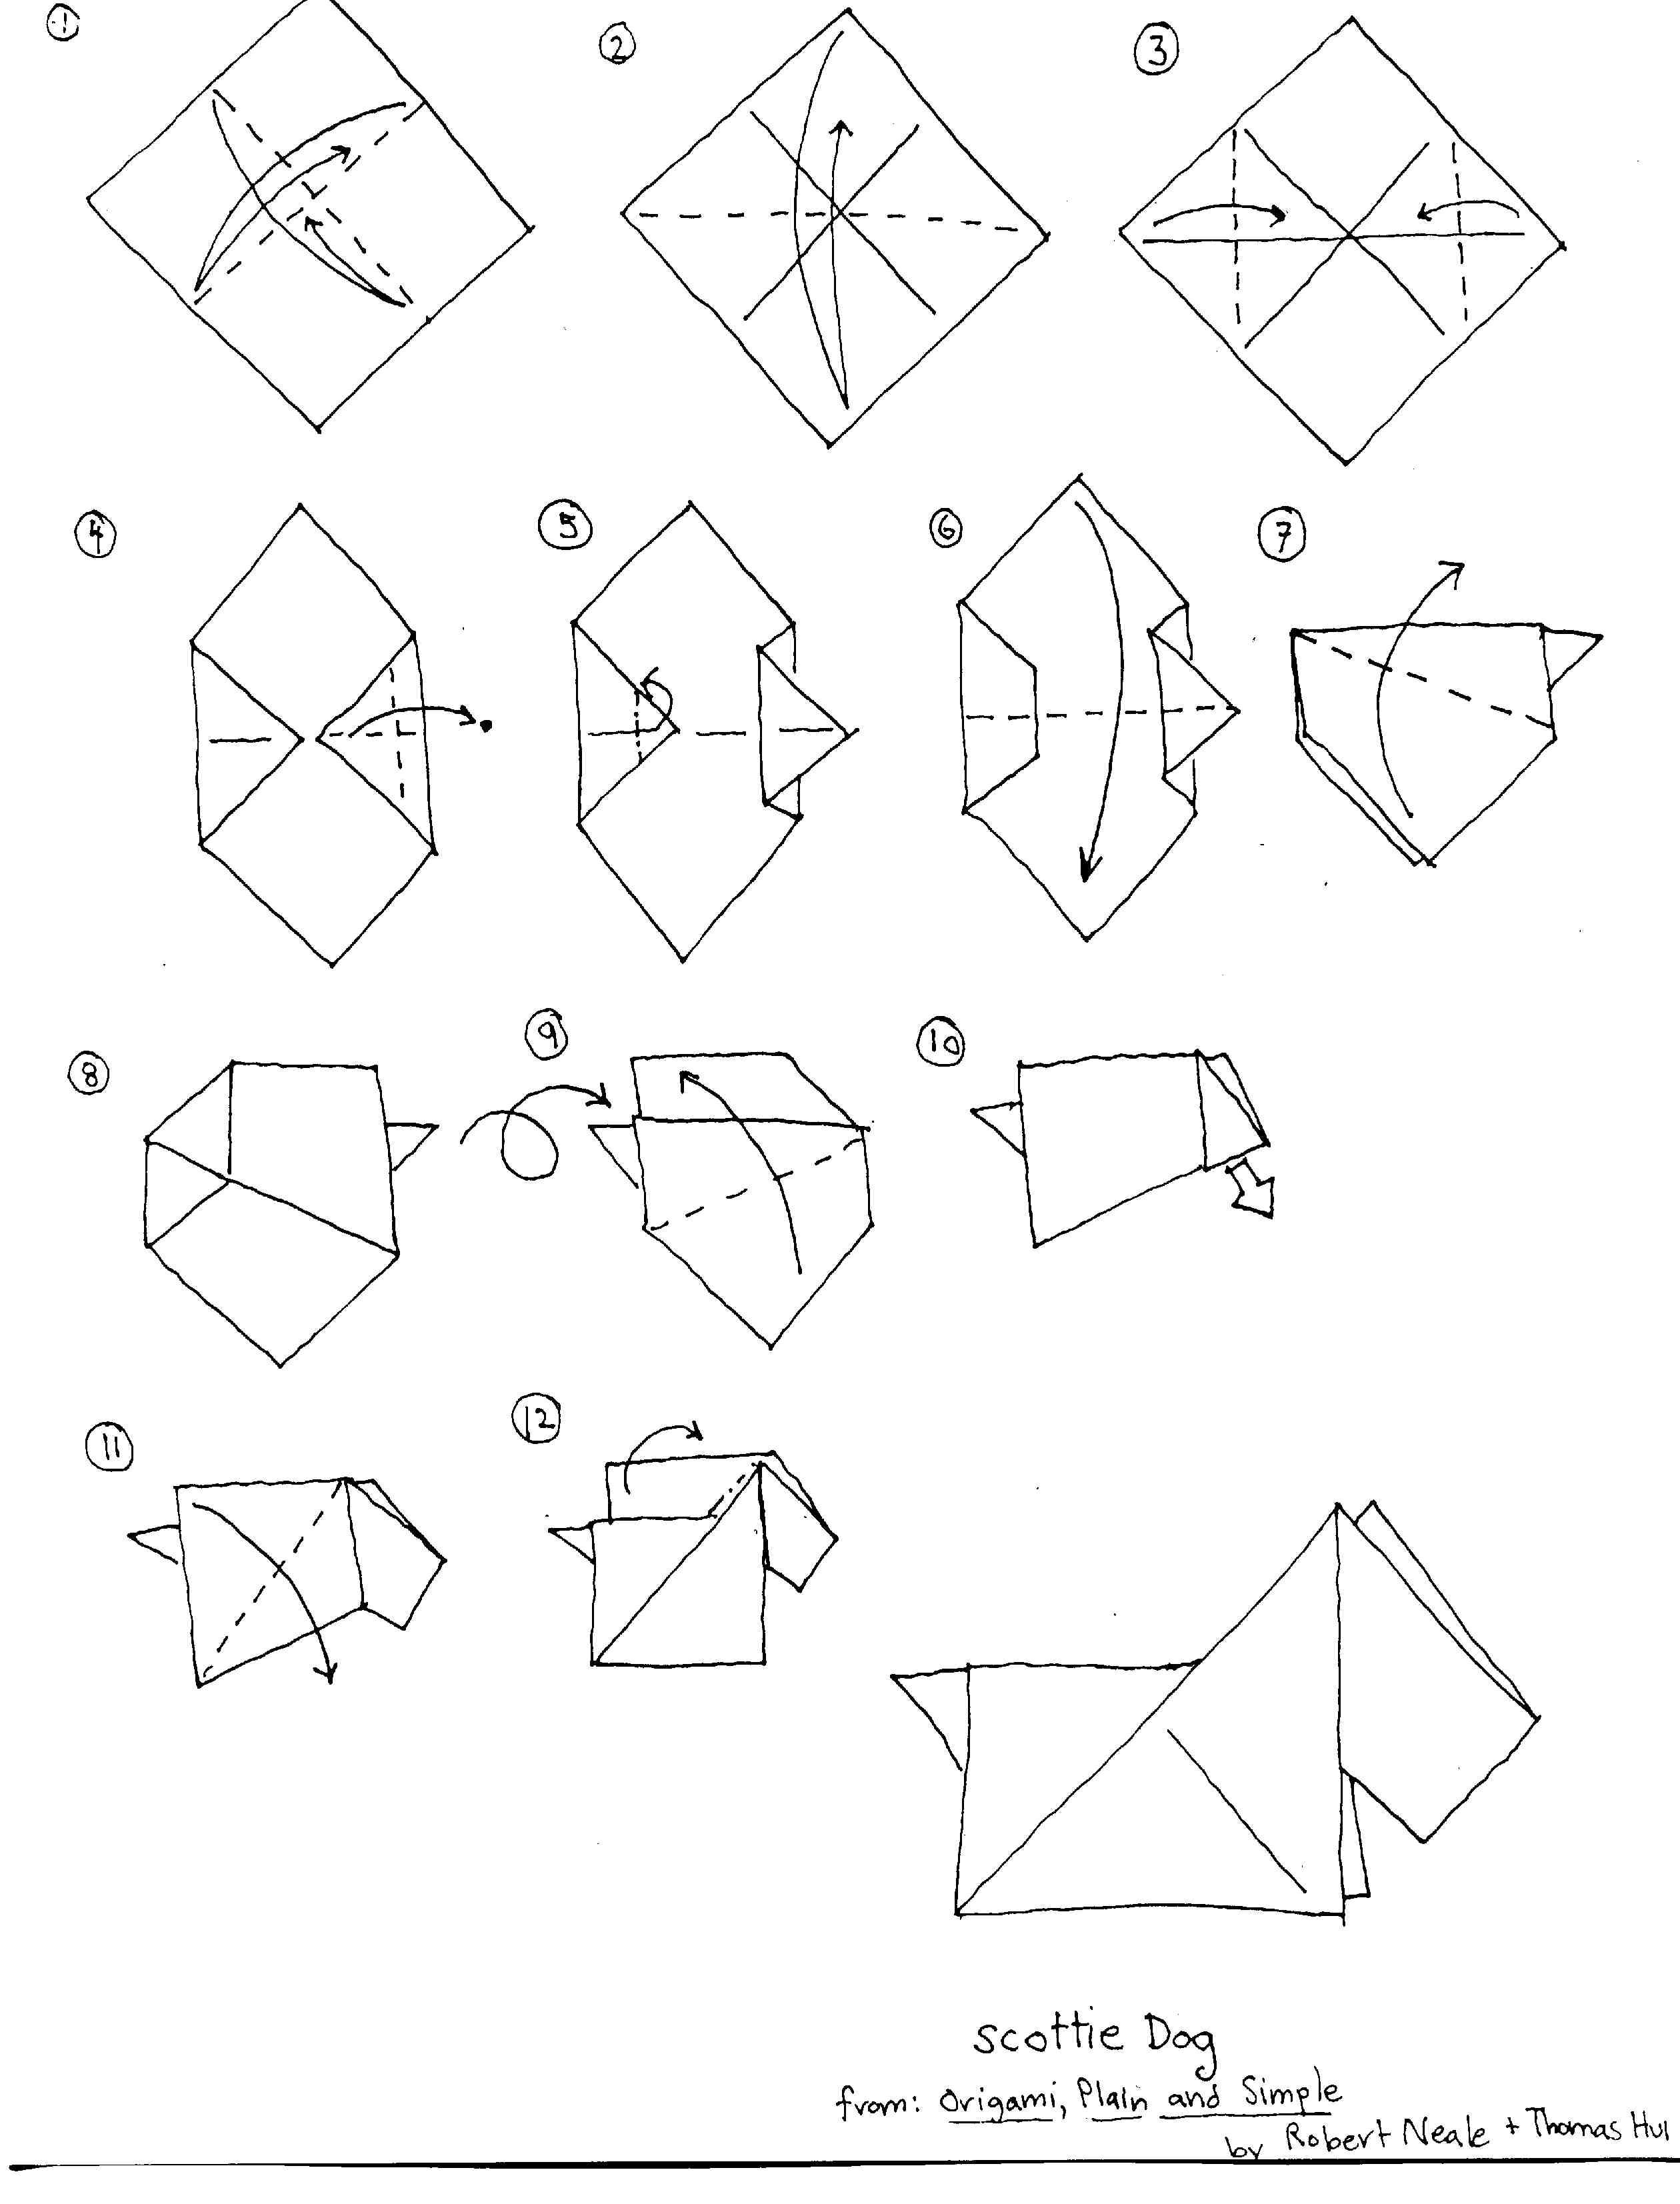 origami dog face instructions 66 origami dog patterns 22 video tutorials how to make dog instructions face origami